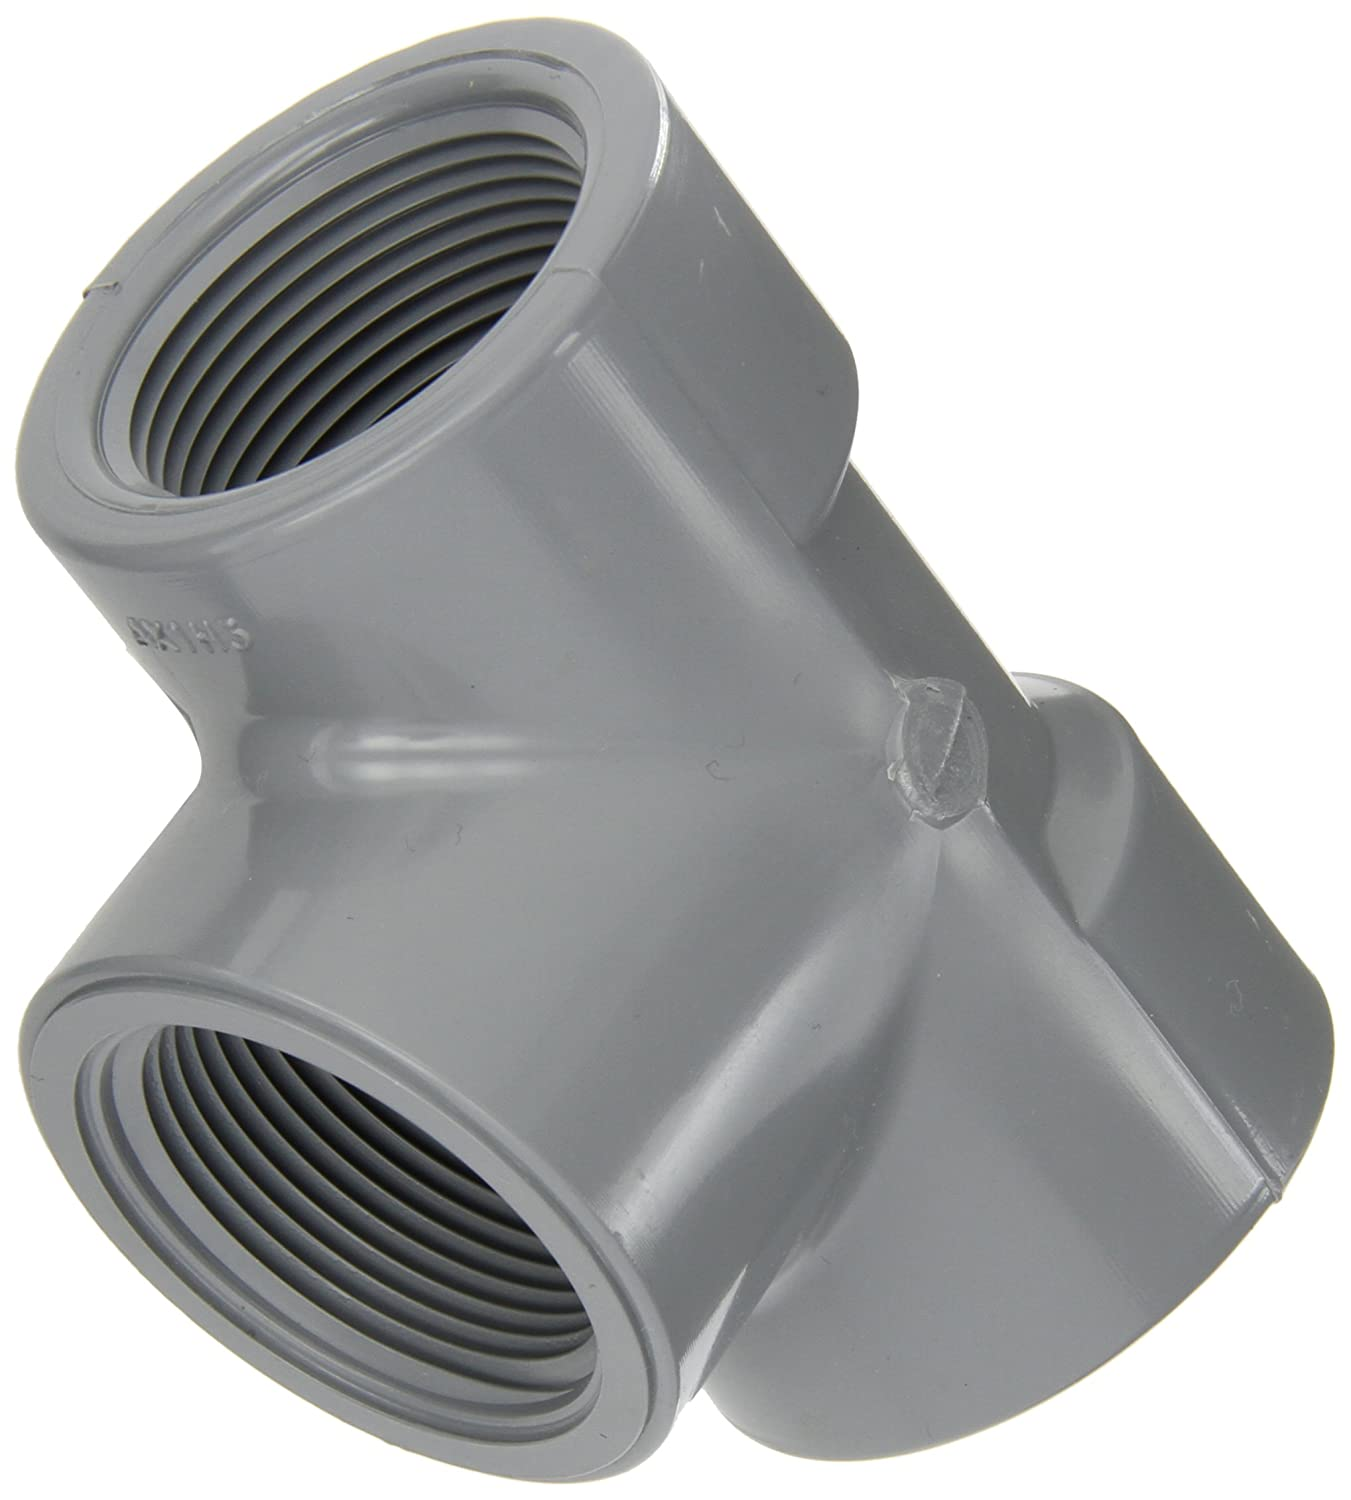 Schedule 80 Spears 805-C Series CPVC Pipe Fitting 1//2 NPT Female 1//2 NPT Female Spears Manufacturing 805-005C Tee